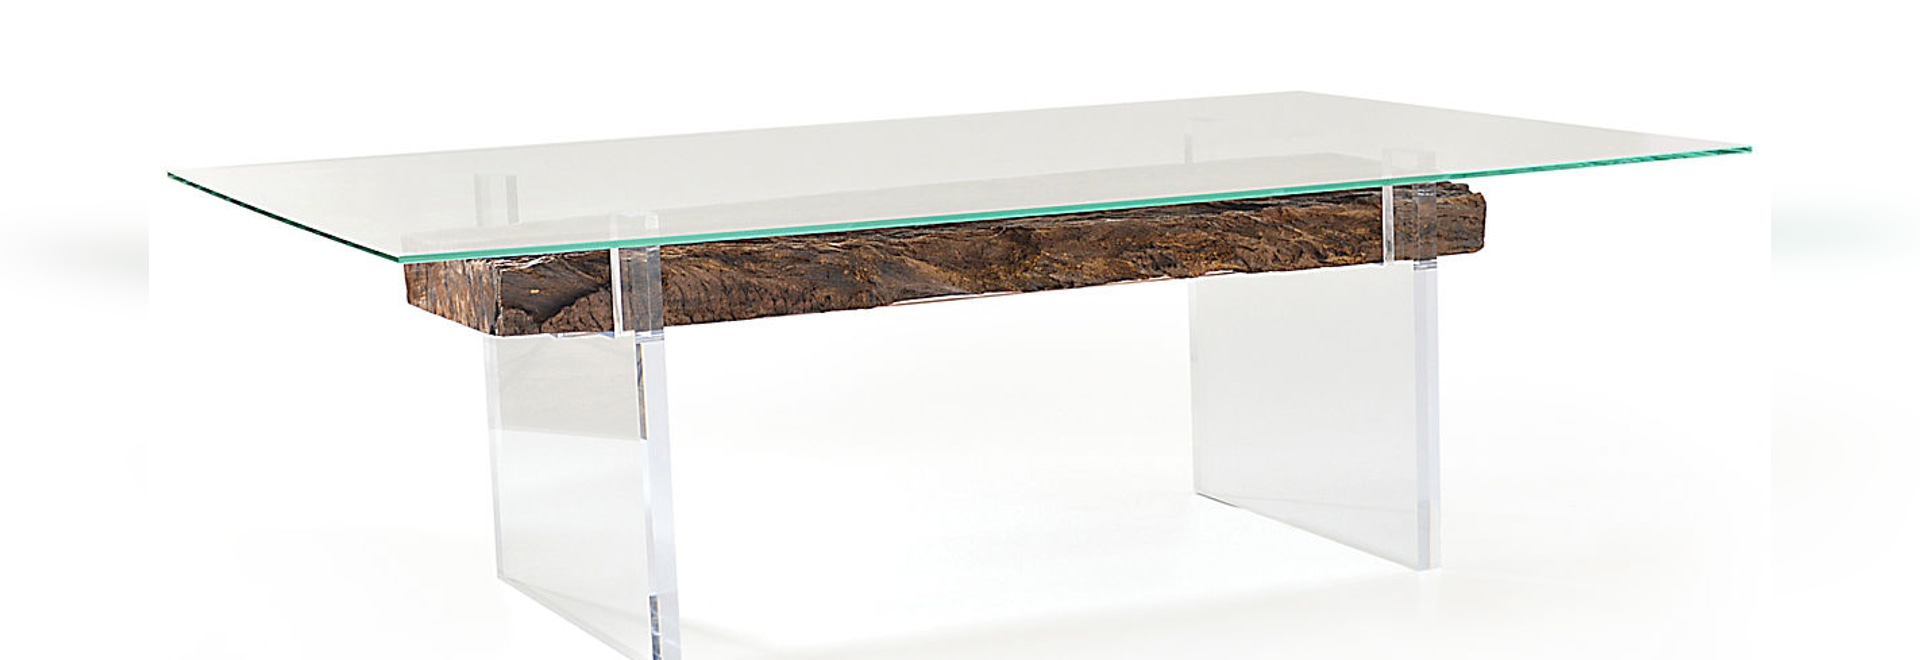 Oitis acrylic dining table glass top